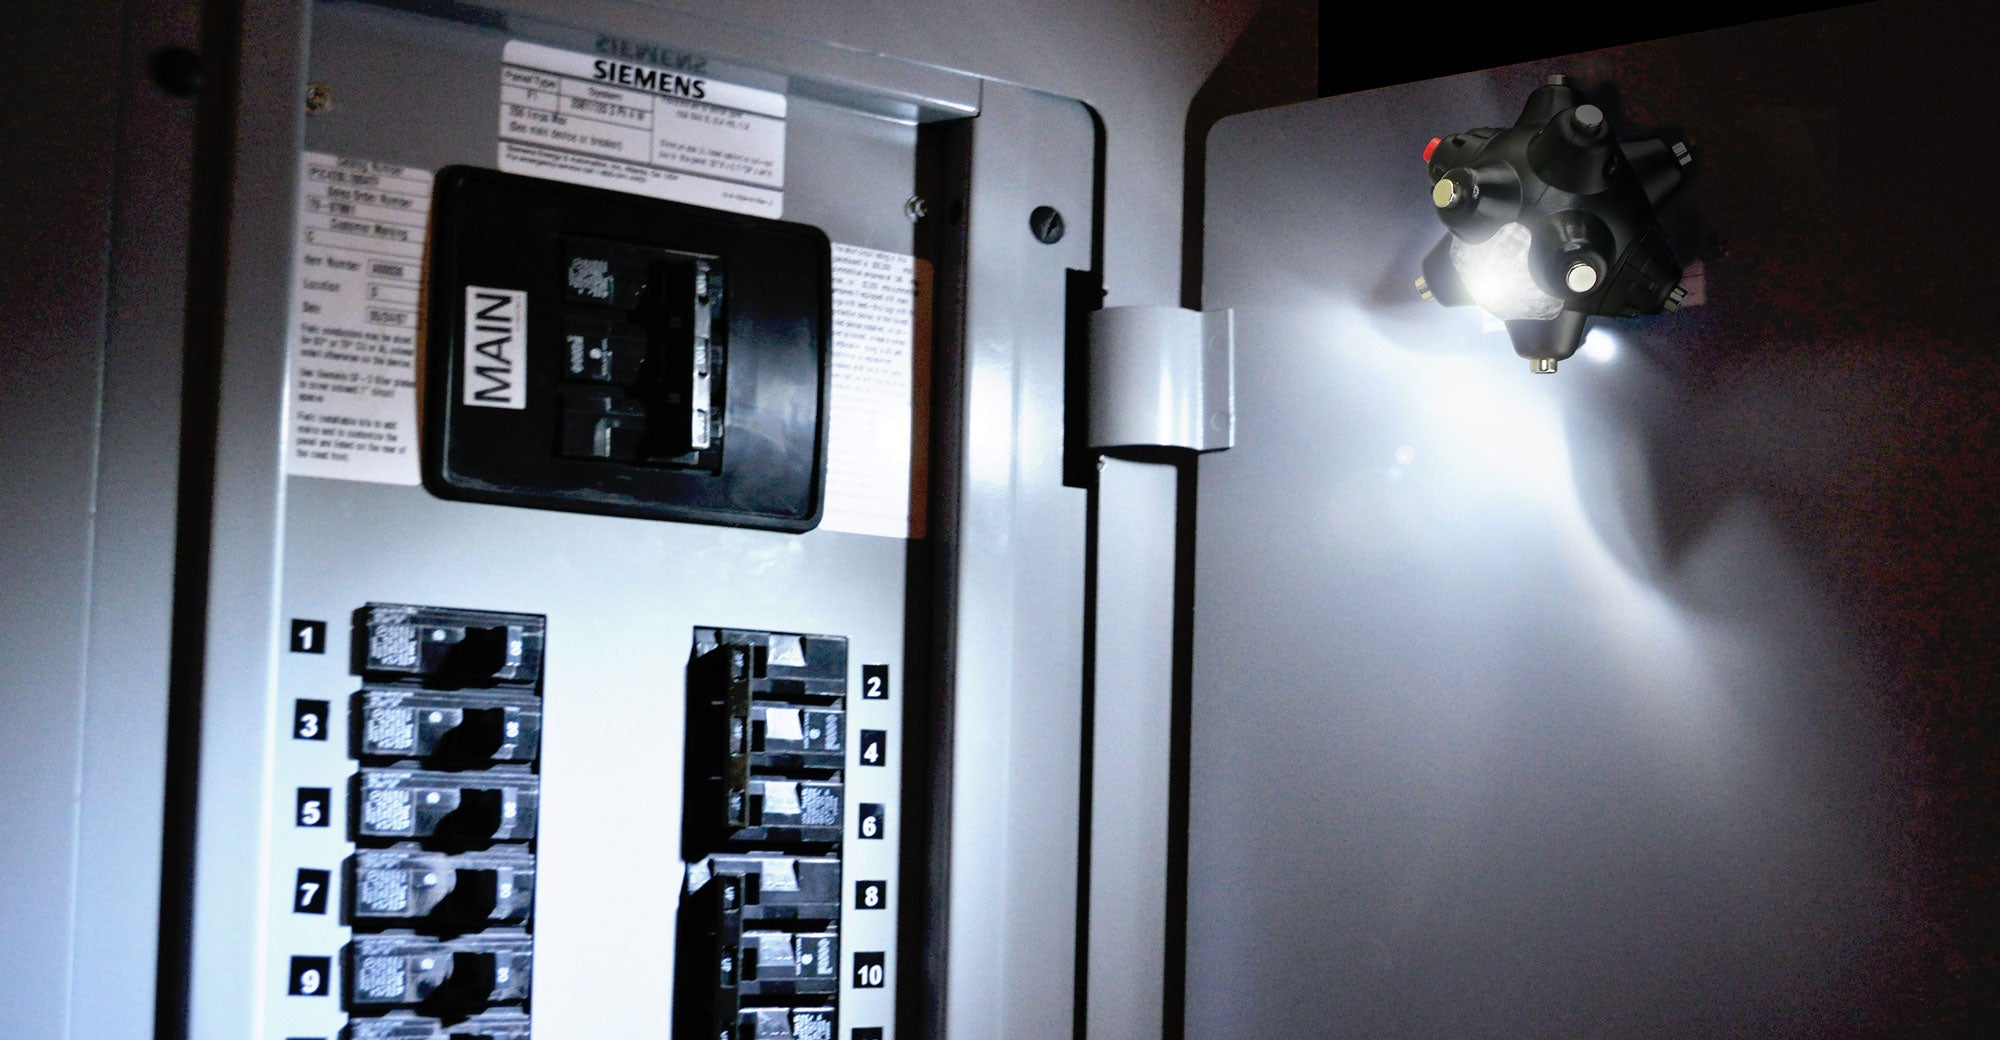 Light Mine Professional Flashlight By Striker Concepts Siemens Fuse Box Used For Lighting